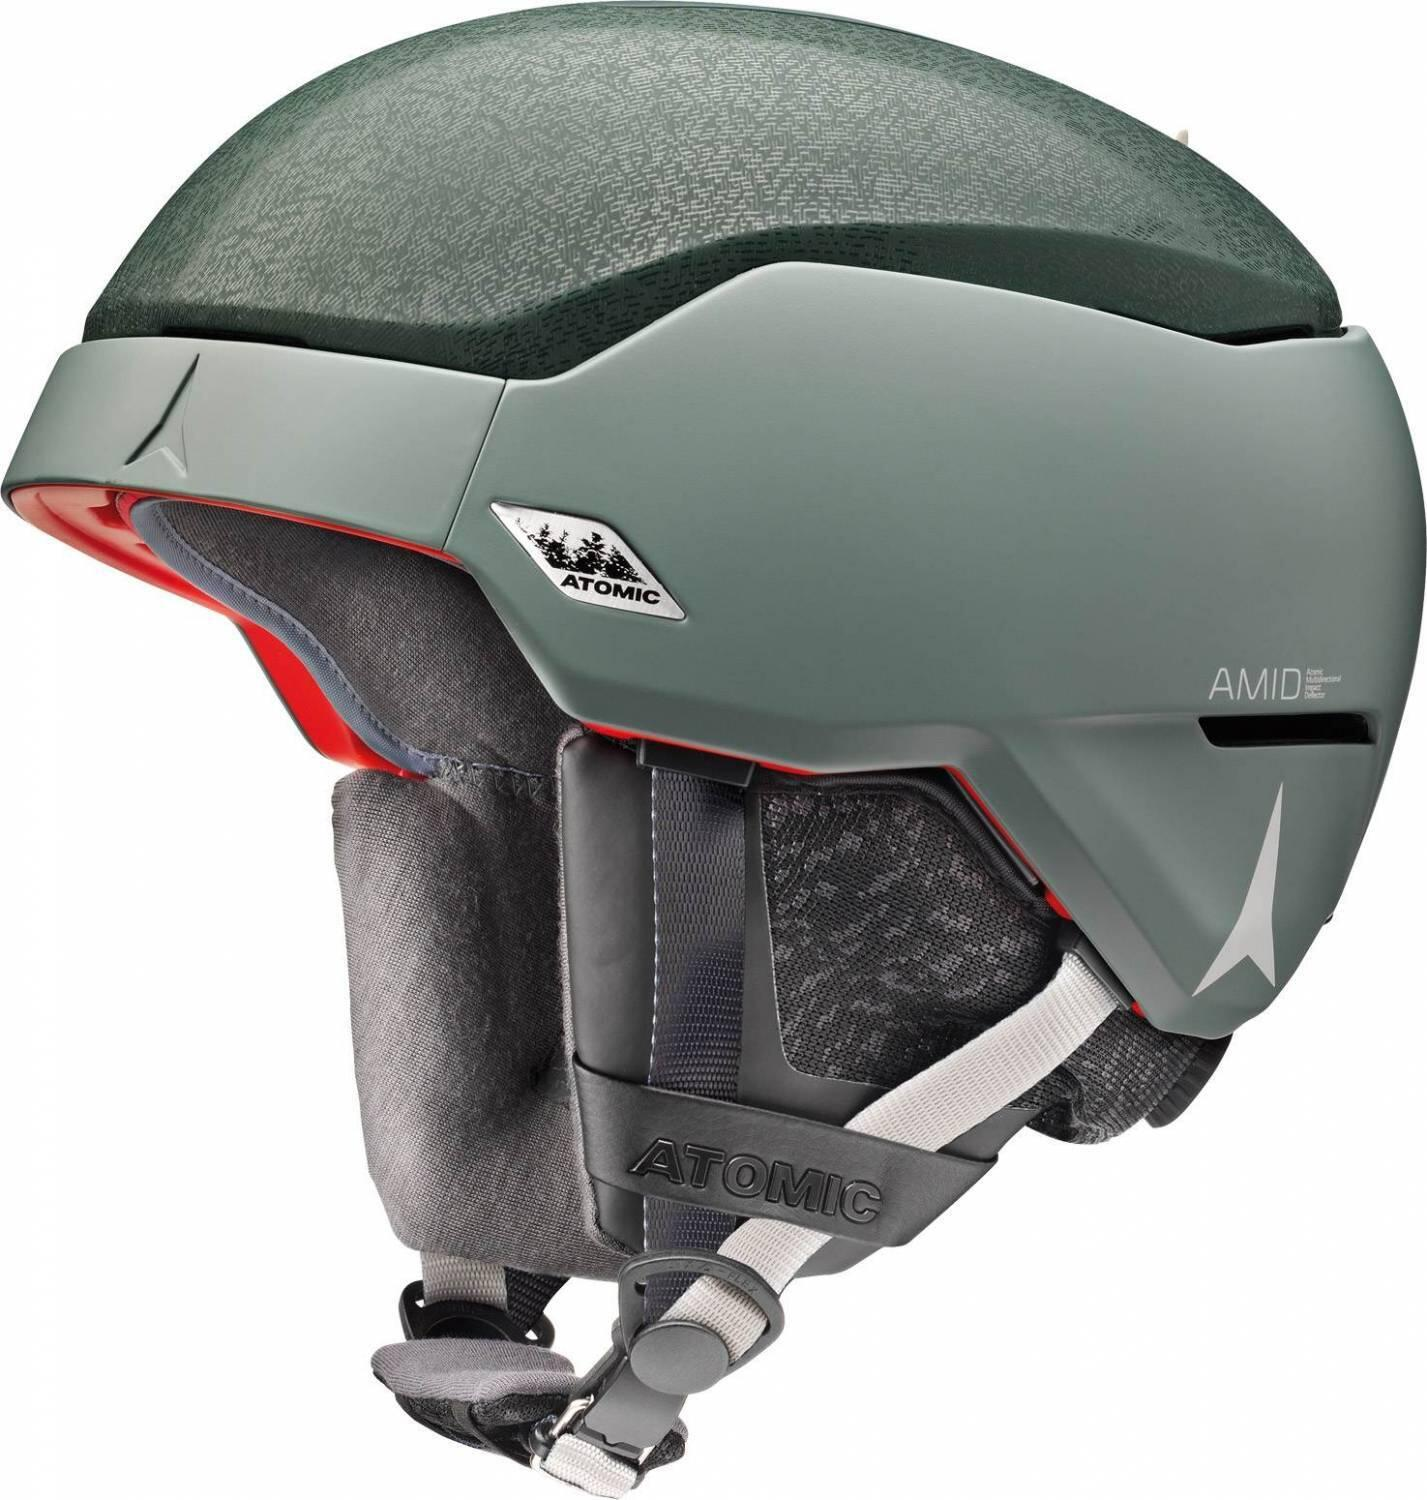 atomic-count-amid-all-mountain-skihelm-gr-ouml-szlig-e-55-59-cm-green-